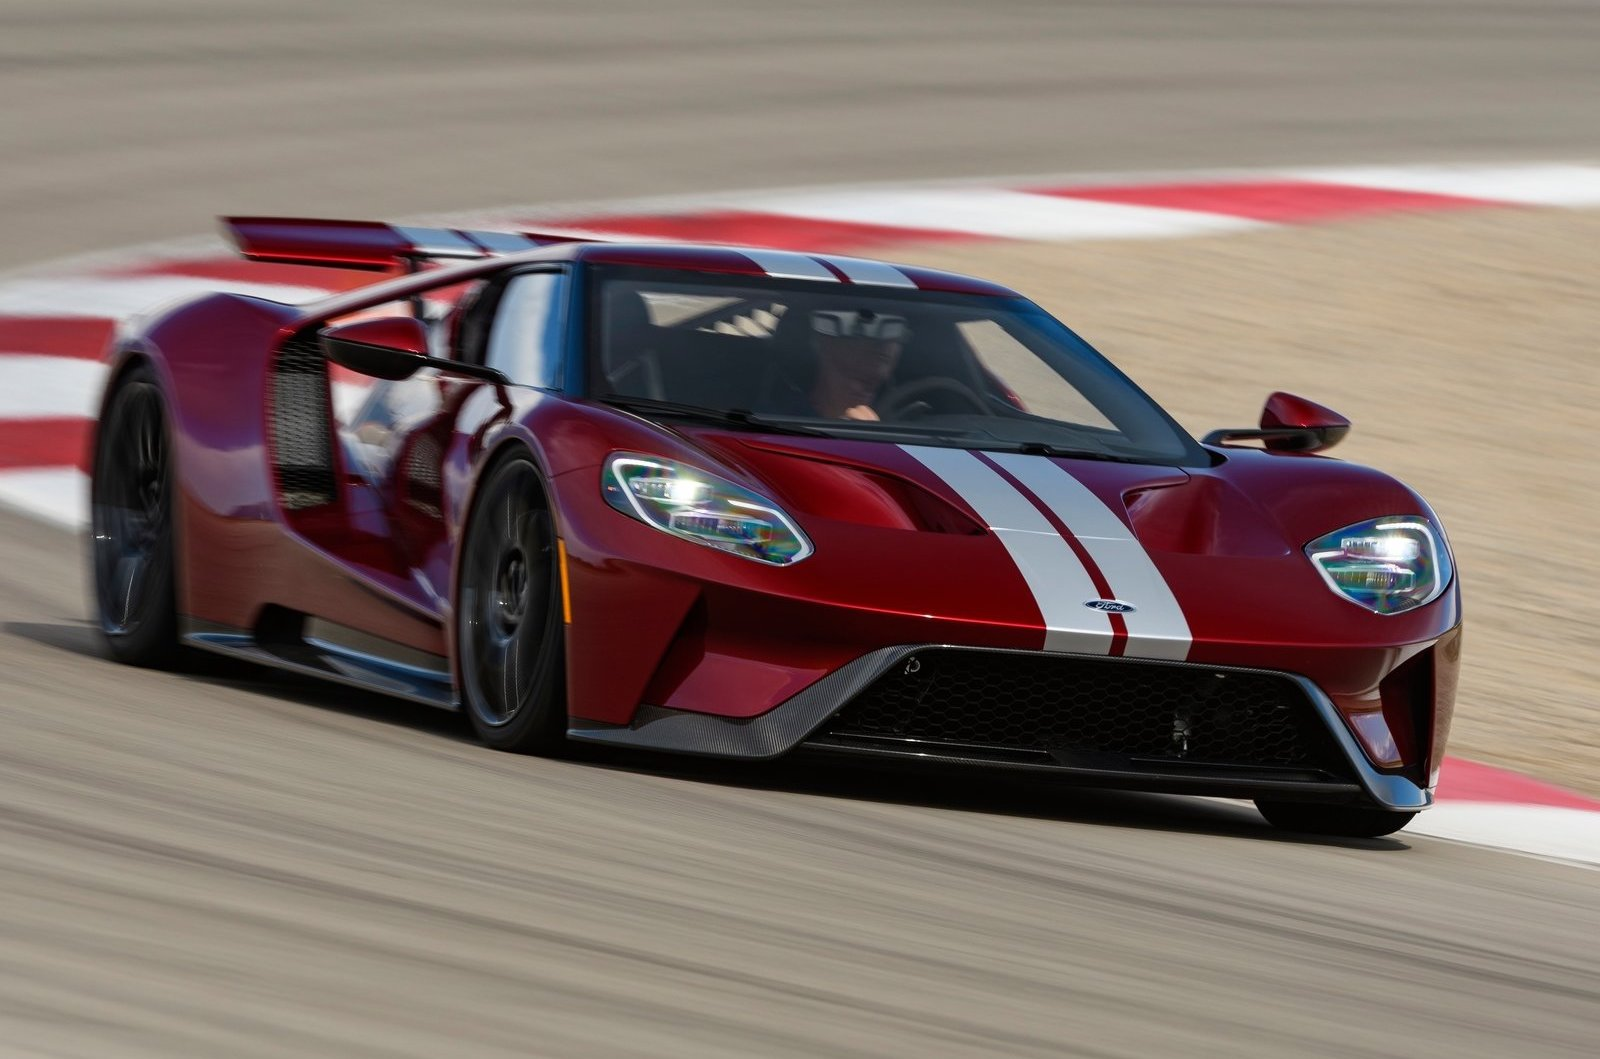 New Ford GT could catch fire, recall issued